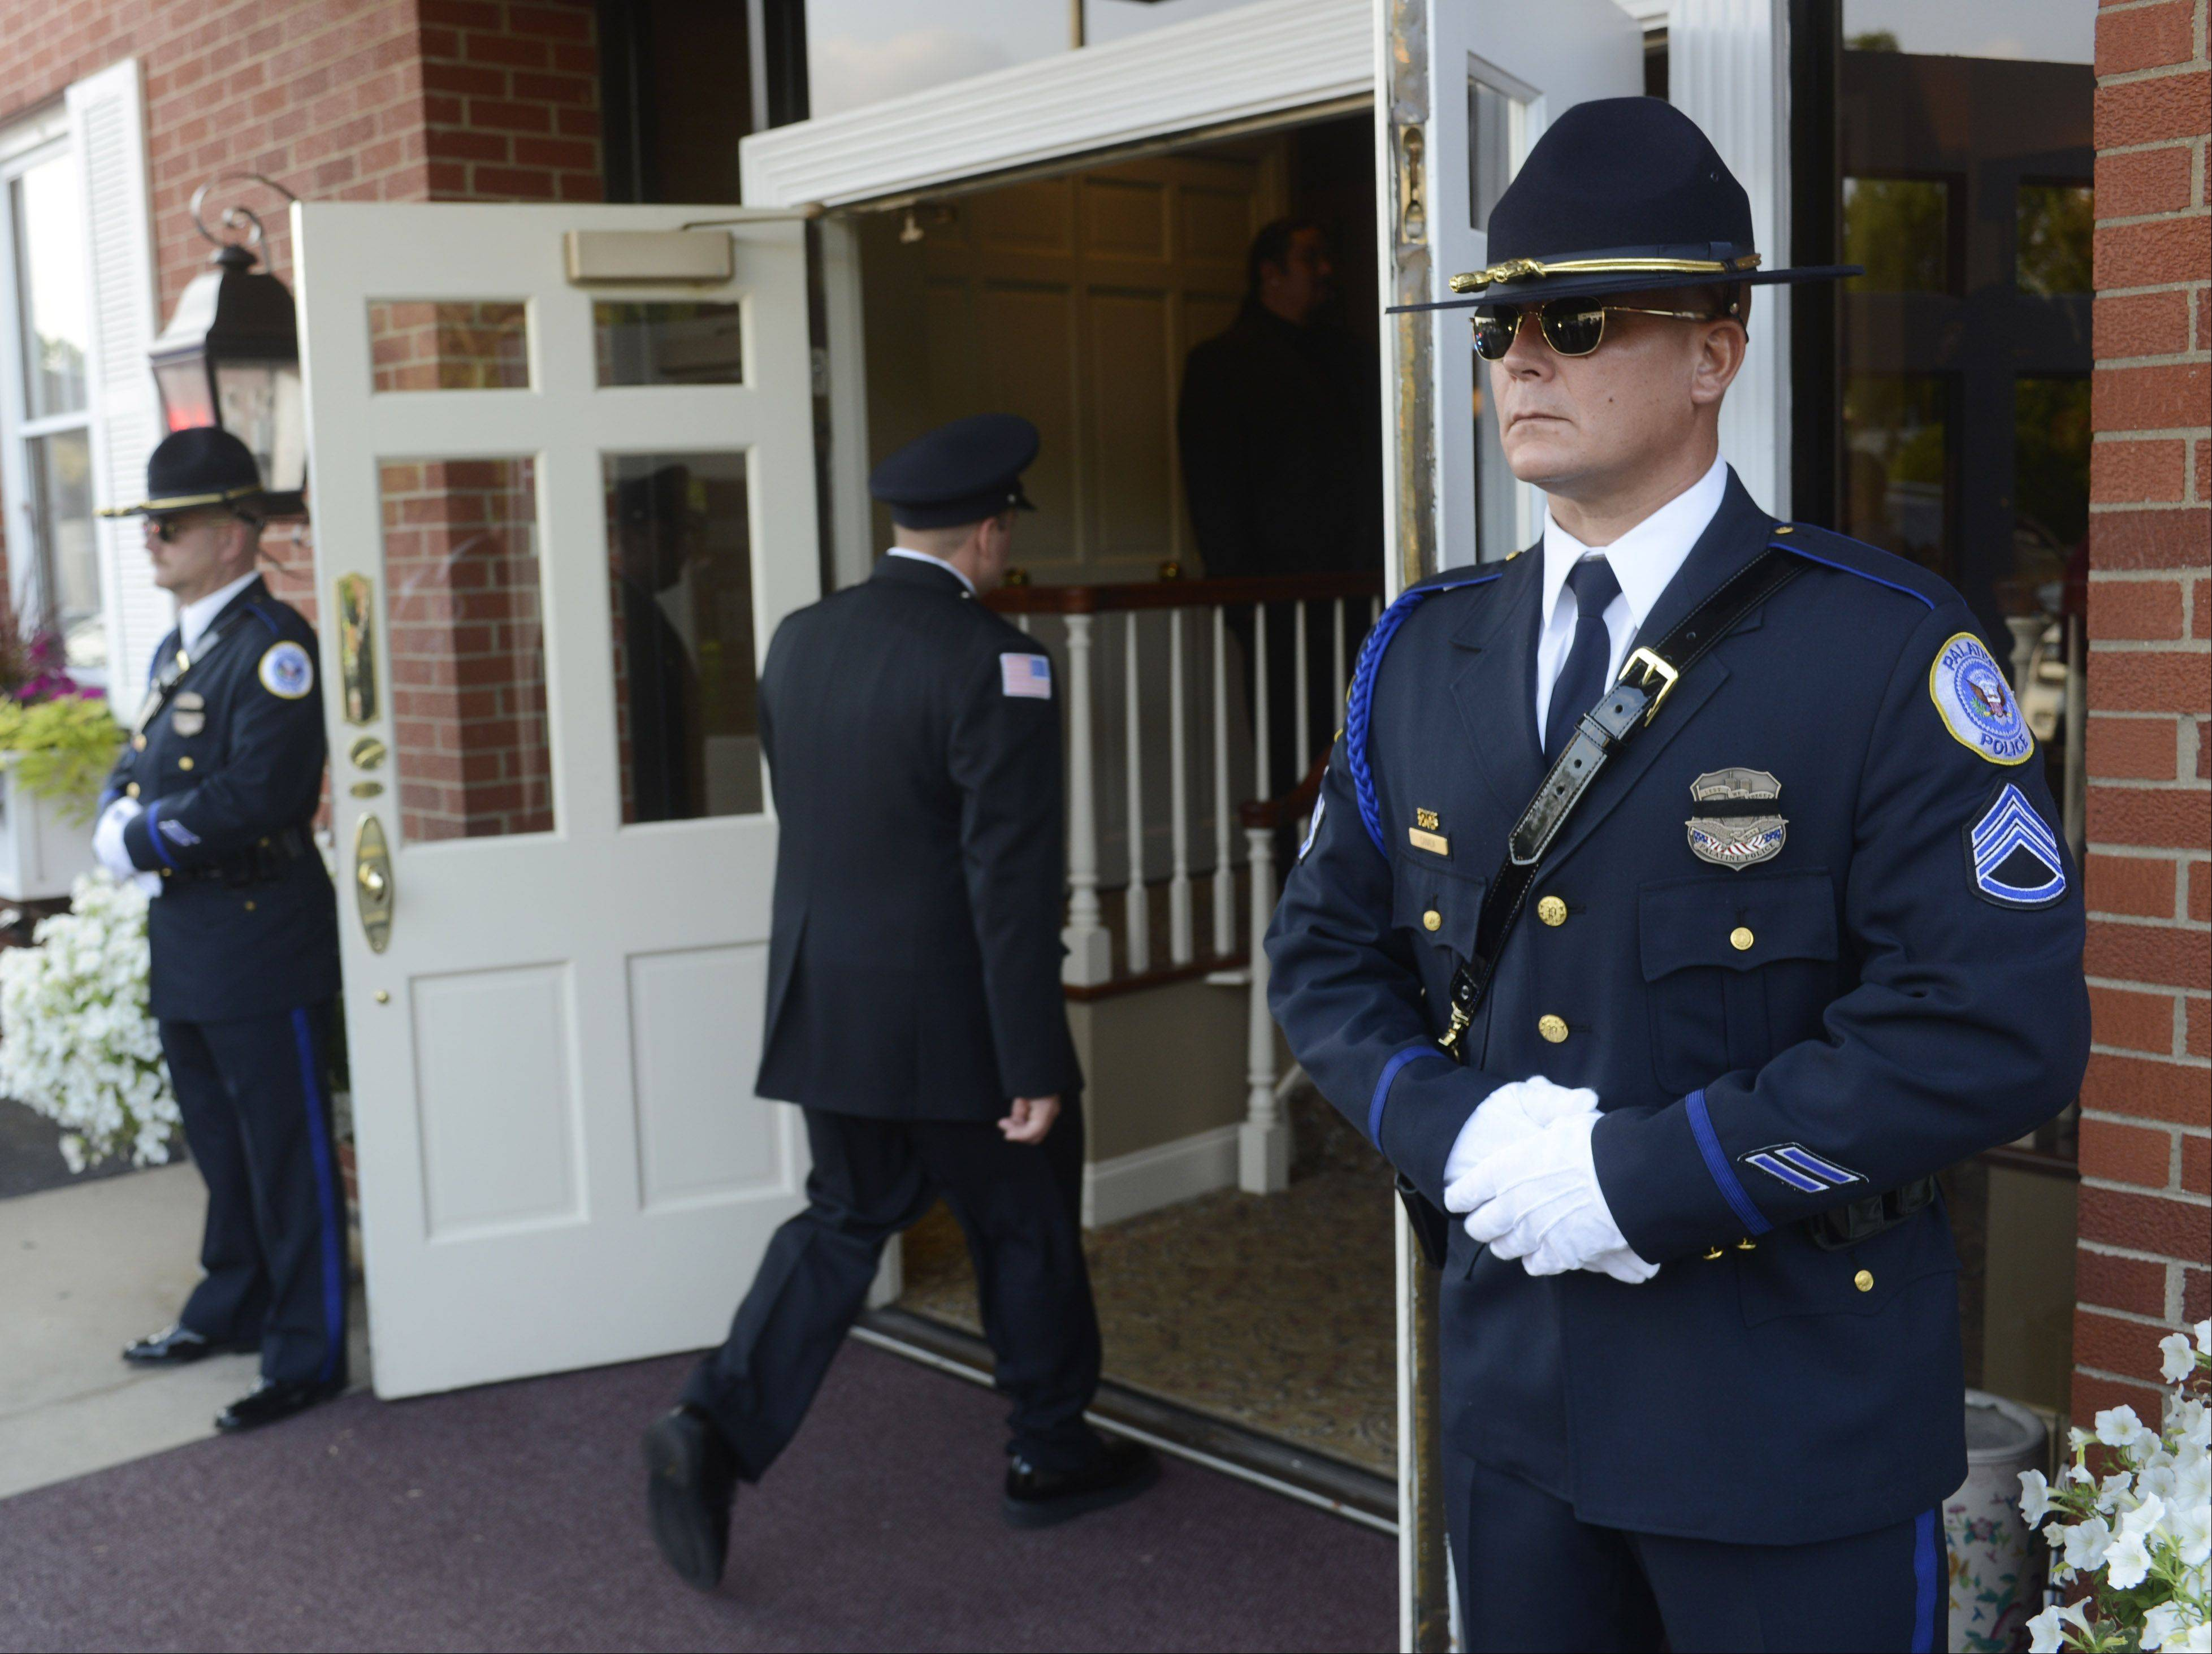 Palatine Police Department Sgt. Larry Canada, right, and officer Mark Dockendorf stand at attention outside the entrance during the wake for Wheeling police officer Shamekia Goodwin-Badger at Kosssak Funeral Home in Wheeling last night.